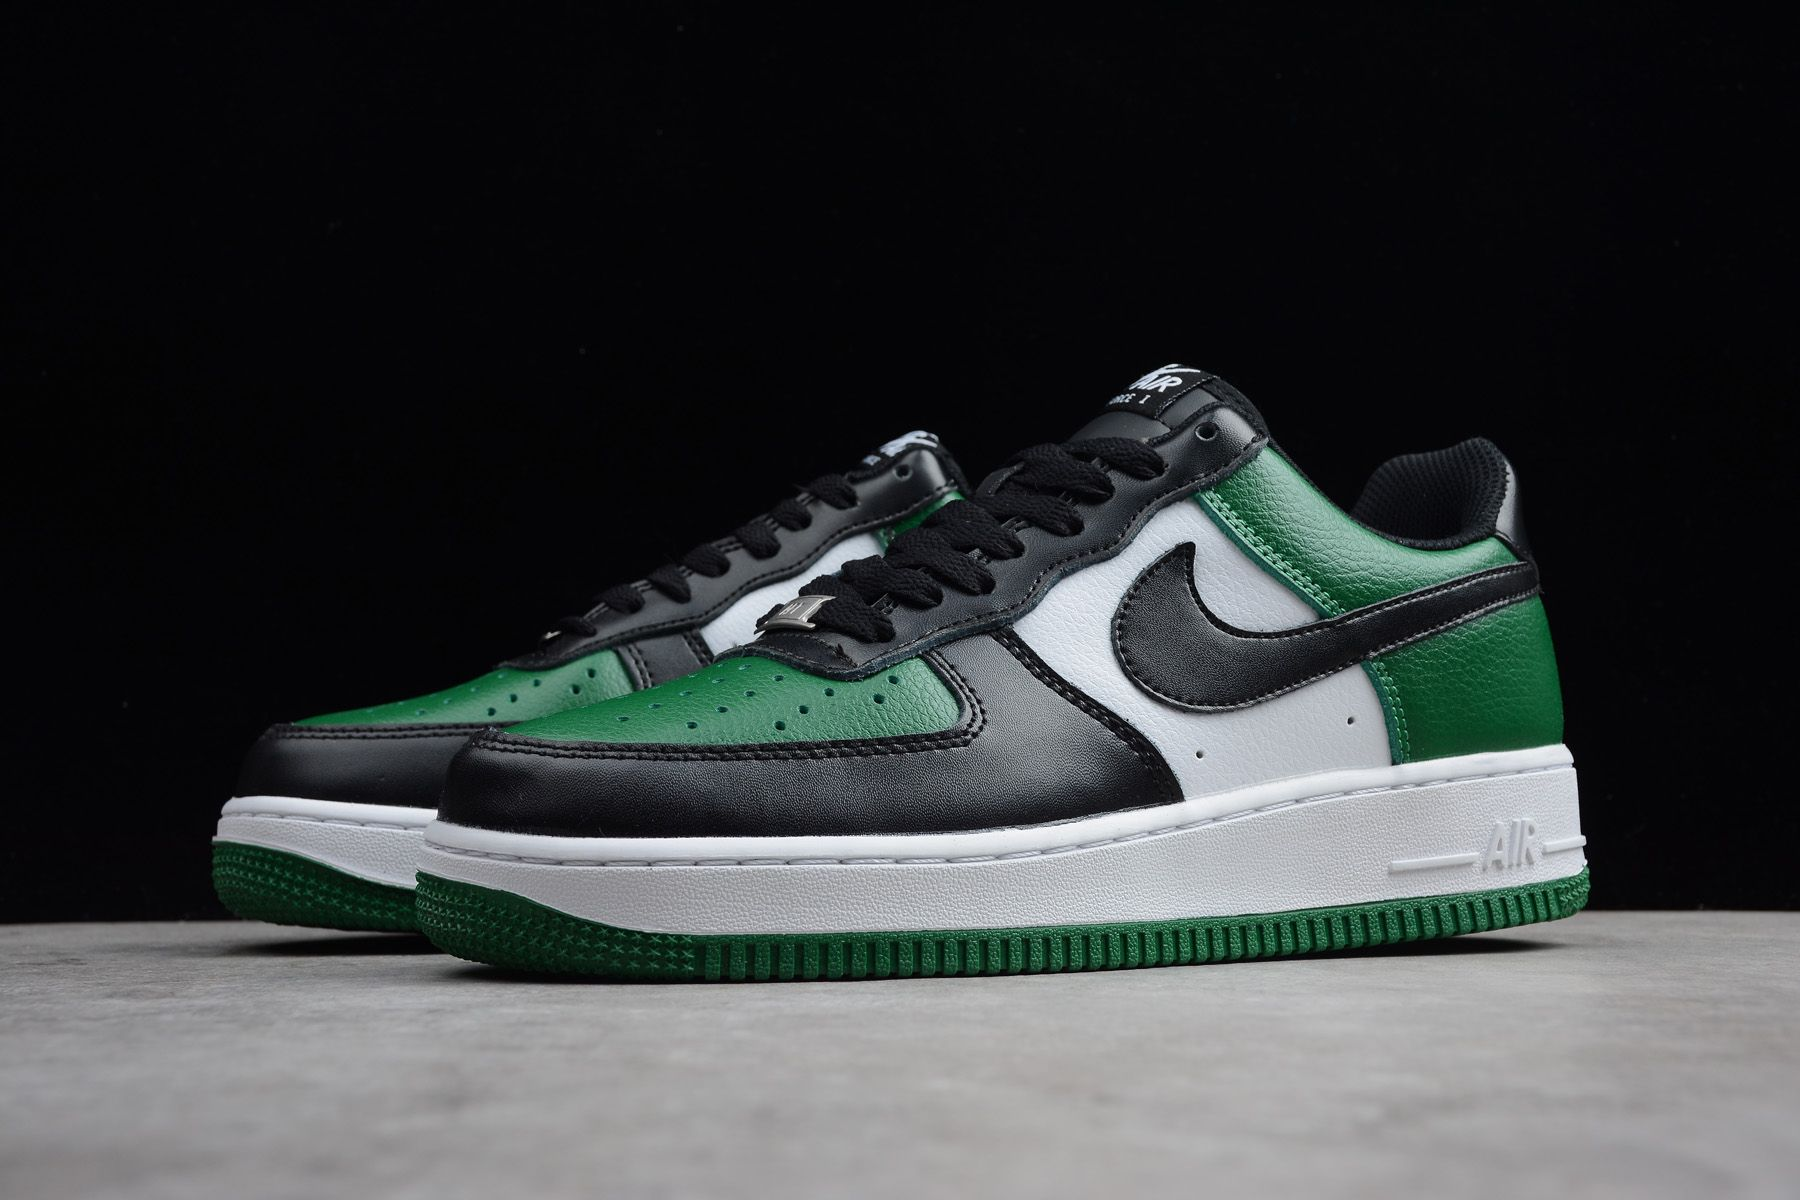 Nike Air Force 1 Low Black-White Pine Green Men s Size 315112-302 ... 08fd1b127